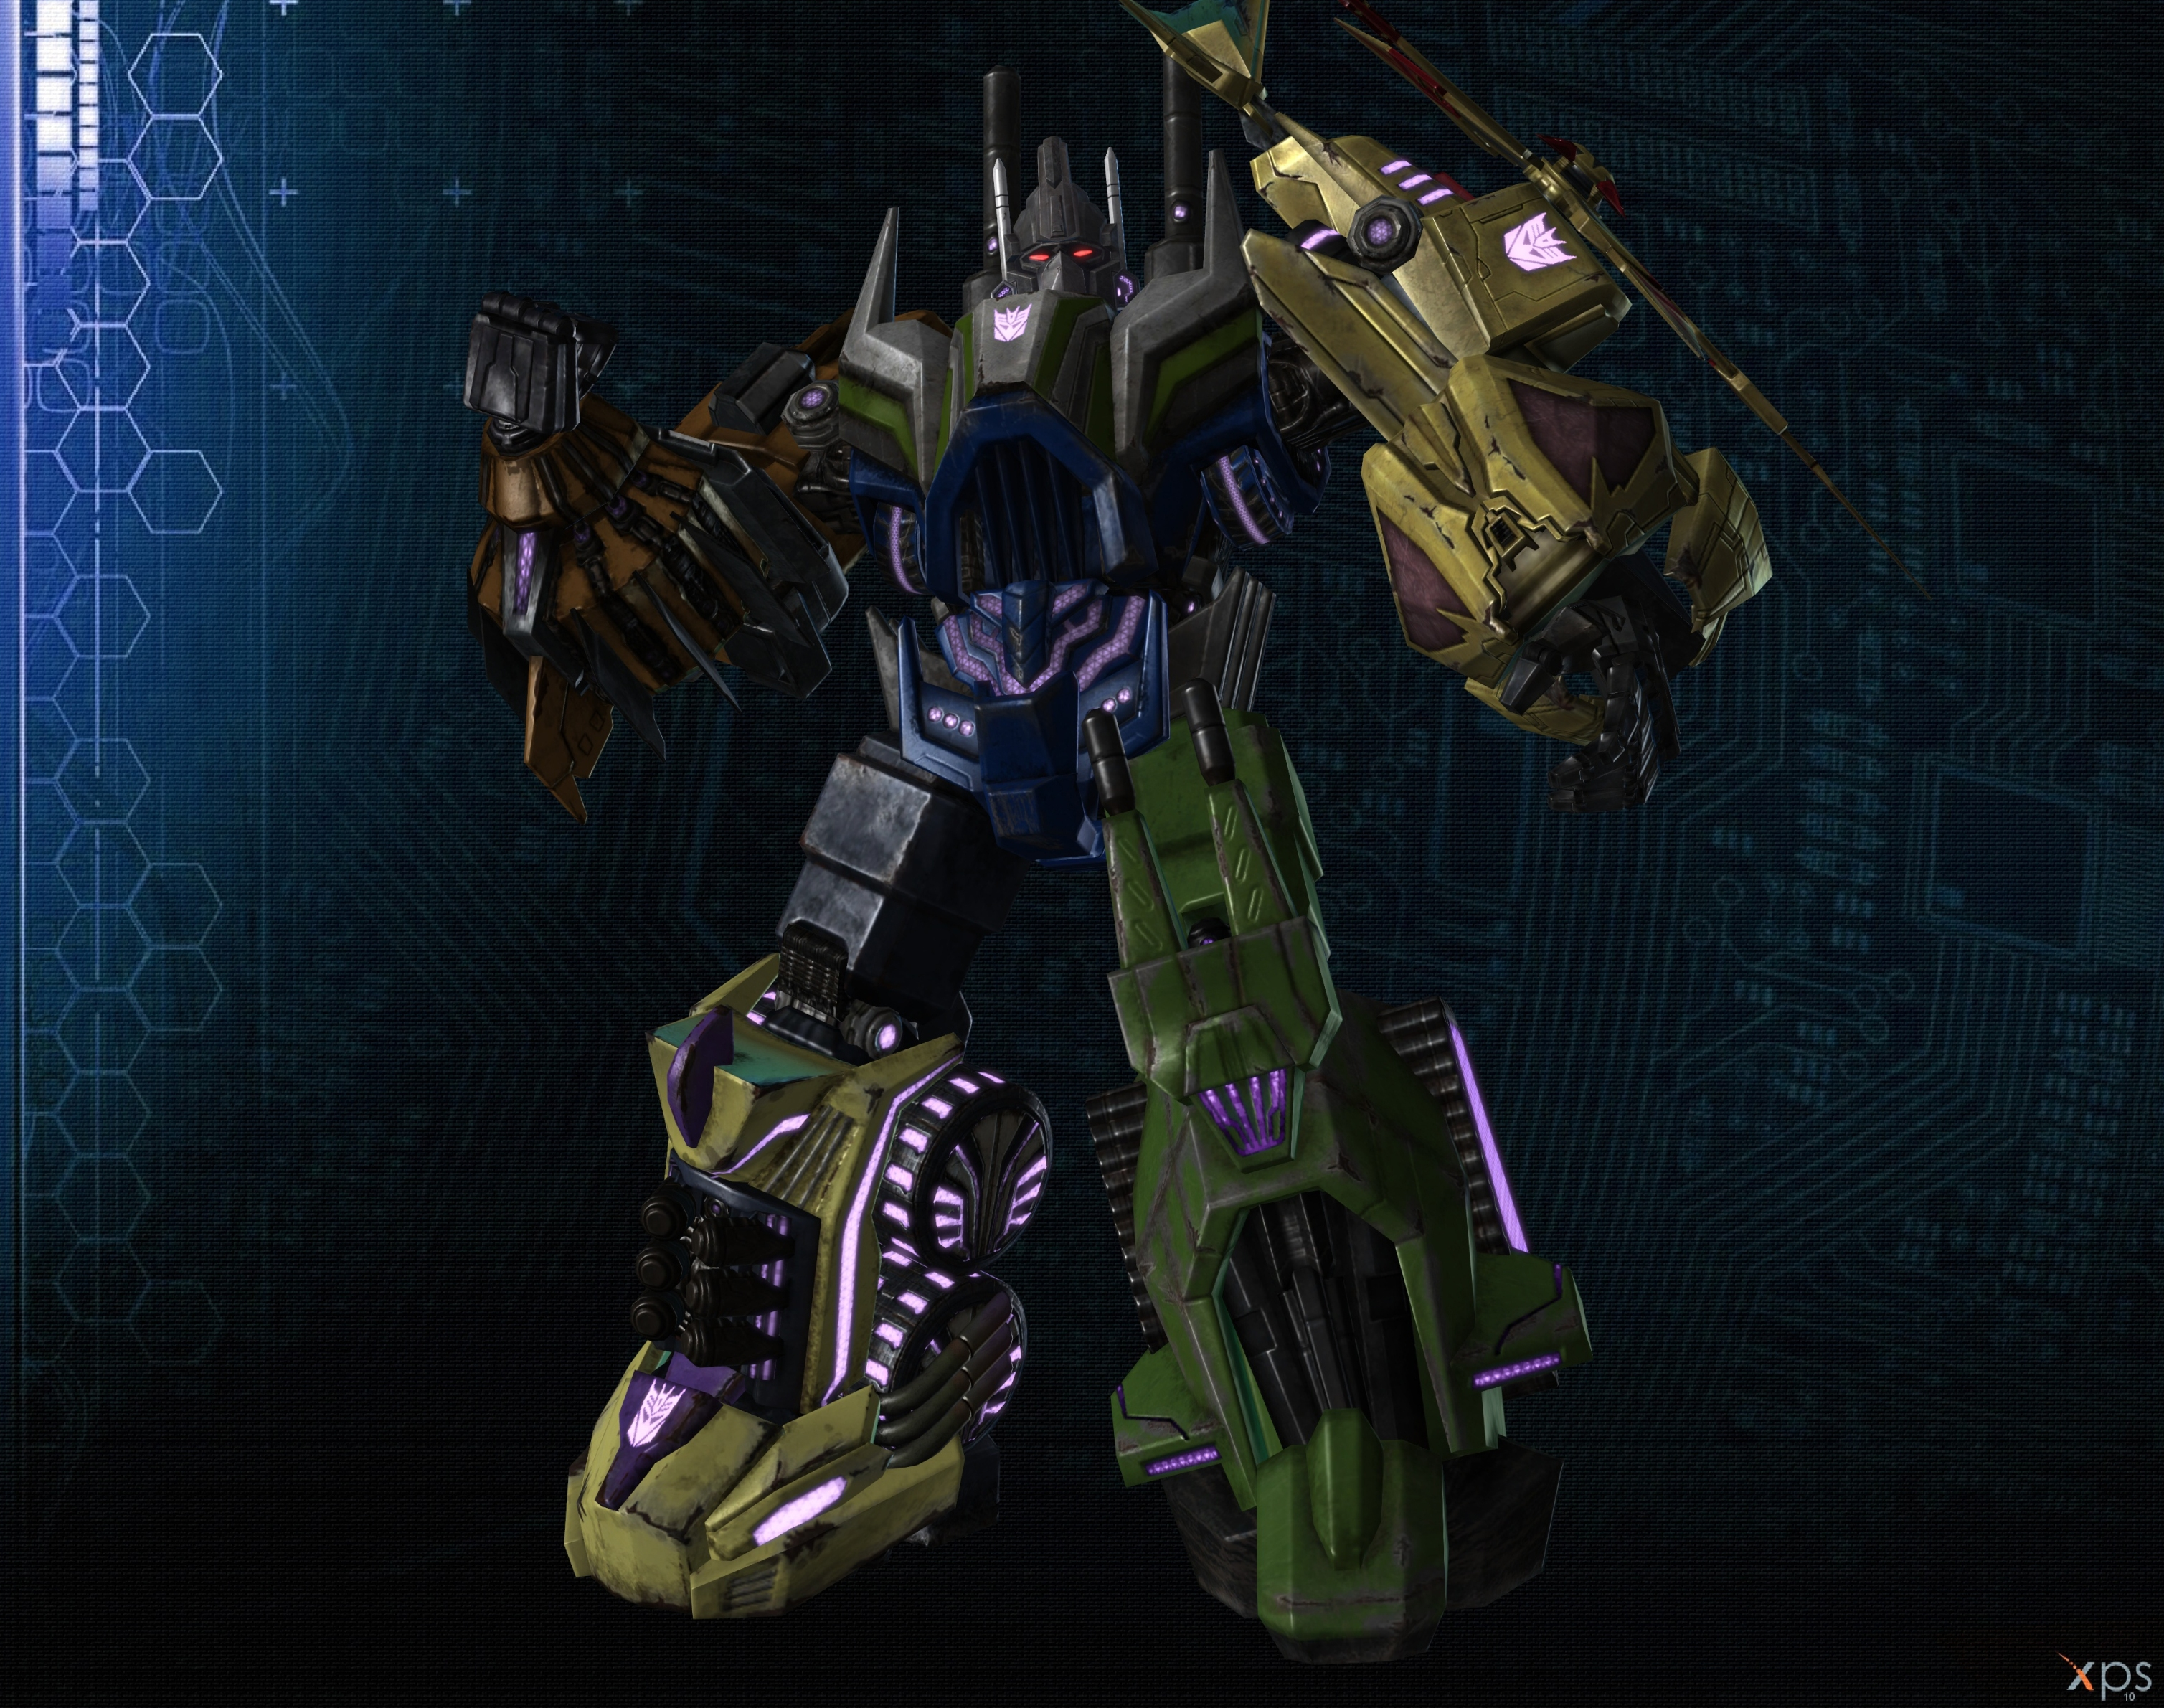 bruticus rise of the dark spark by goreface13 on